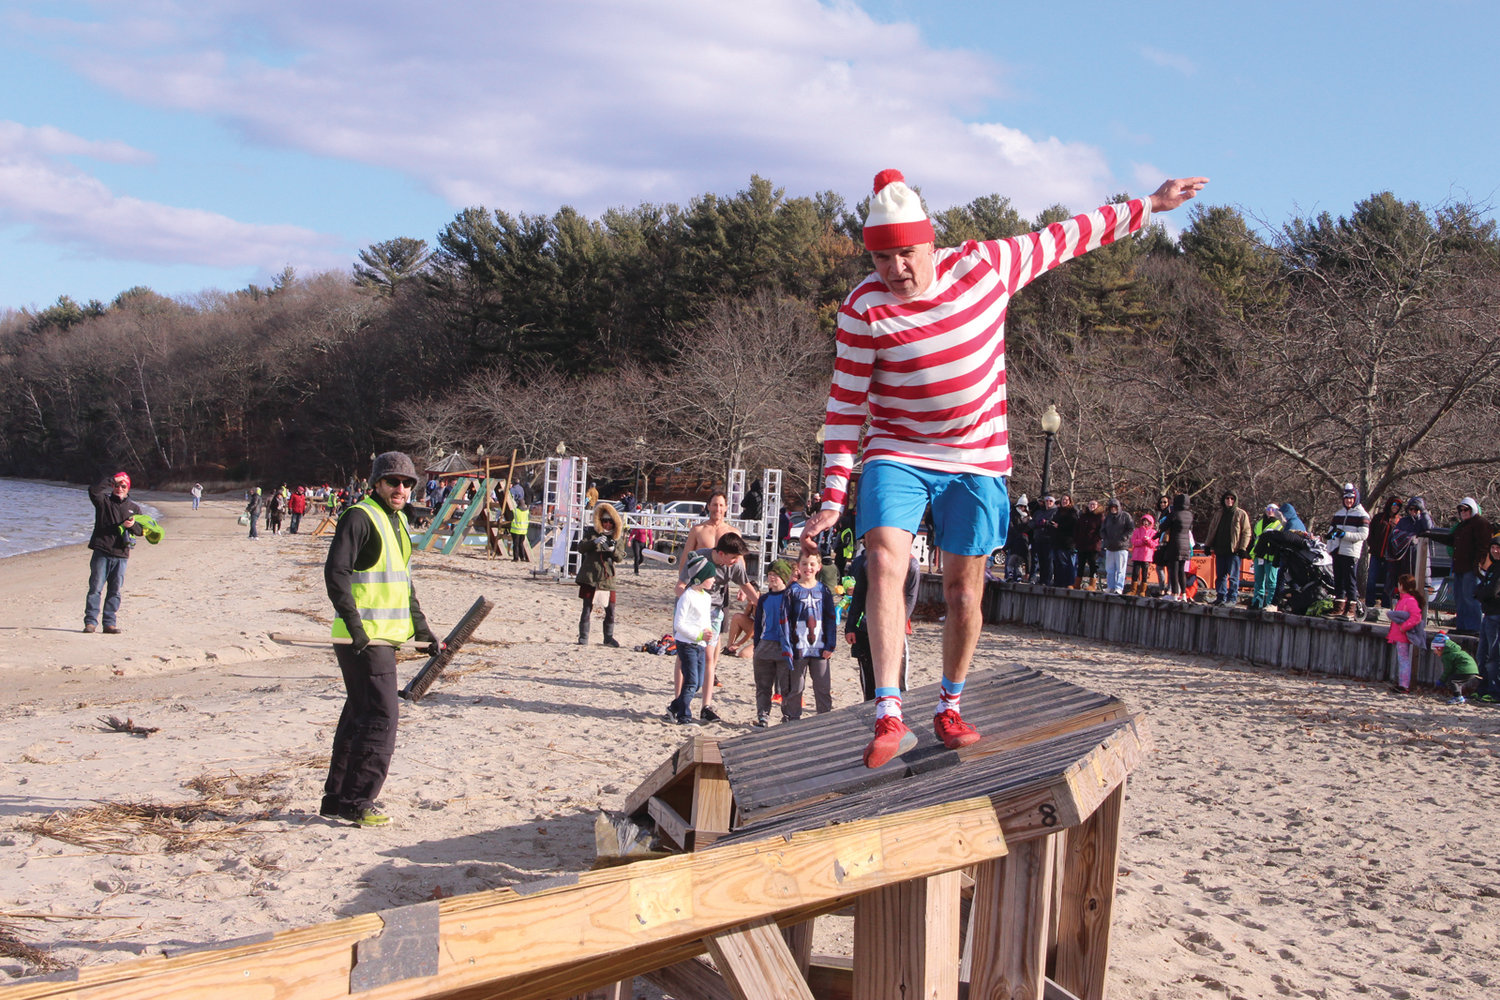 FINAL OBSTACLE: Larry Phillips, 58, from Red Hook, N.Y. runs the final challenge in the obstacle course before jumping into the bay. Phillips said he makes a point of participating in New Year's Day plunges and had this one on his list. He completed the obsta-plunge course in 16:52.